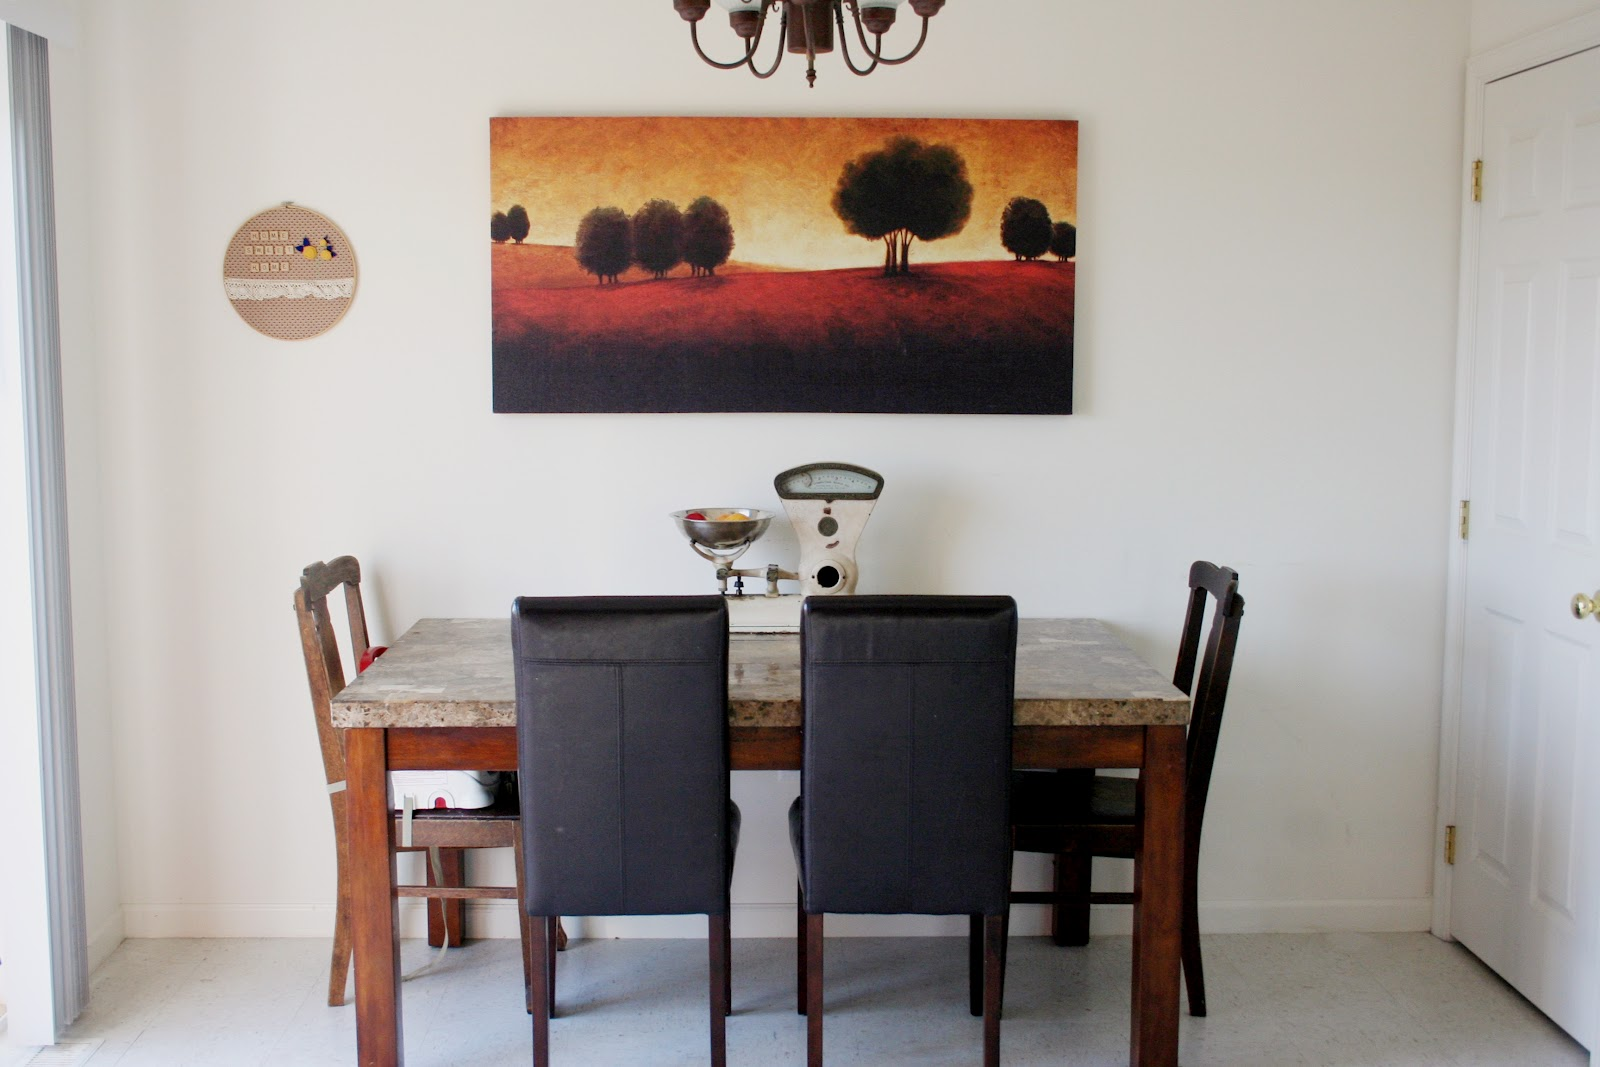 Against The Wall Dining Table Country Mouse Tales House Tour Eat In Kitchen